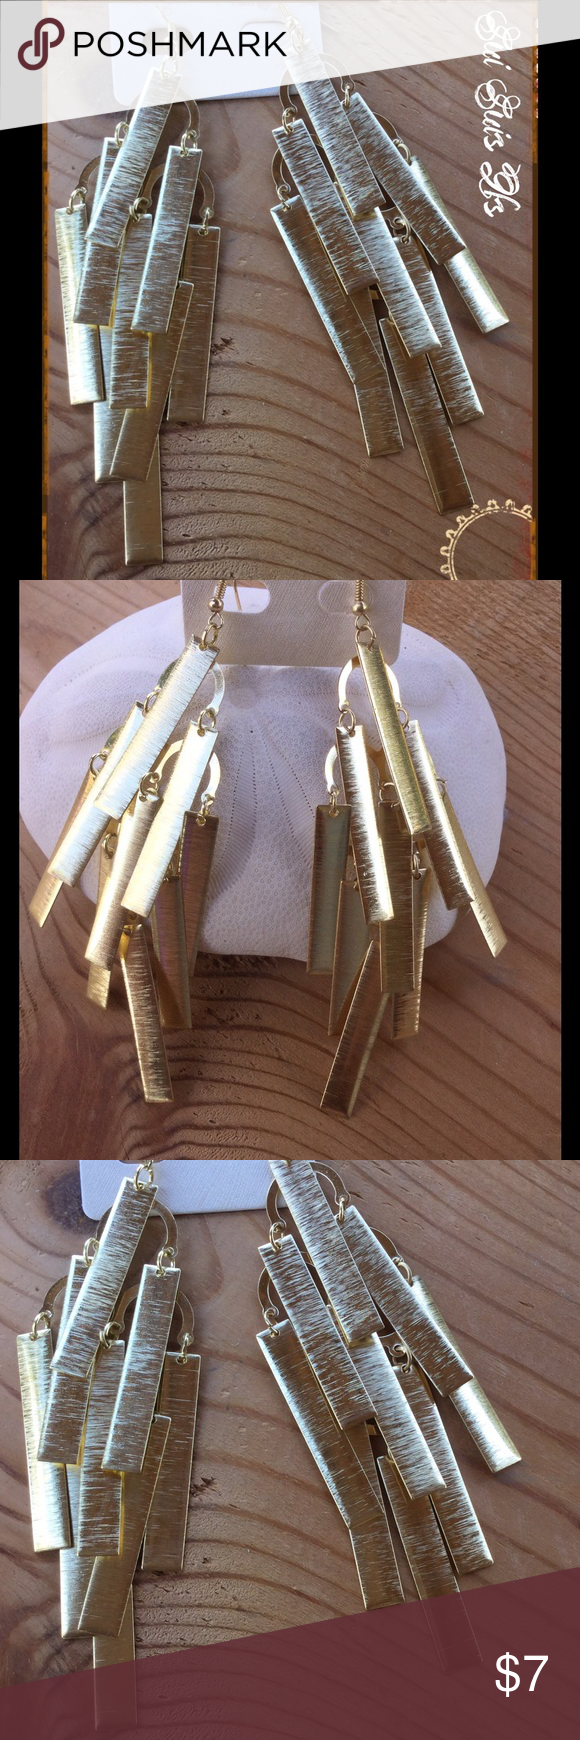 Gold chandelier style earrings Large brushed gold tone earrings💕Buy one jewelry item get the second one 1/2 off 💕 Jewelry Earrings